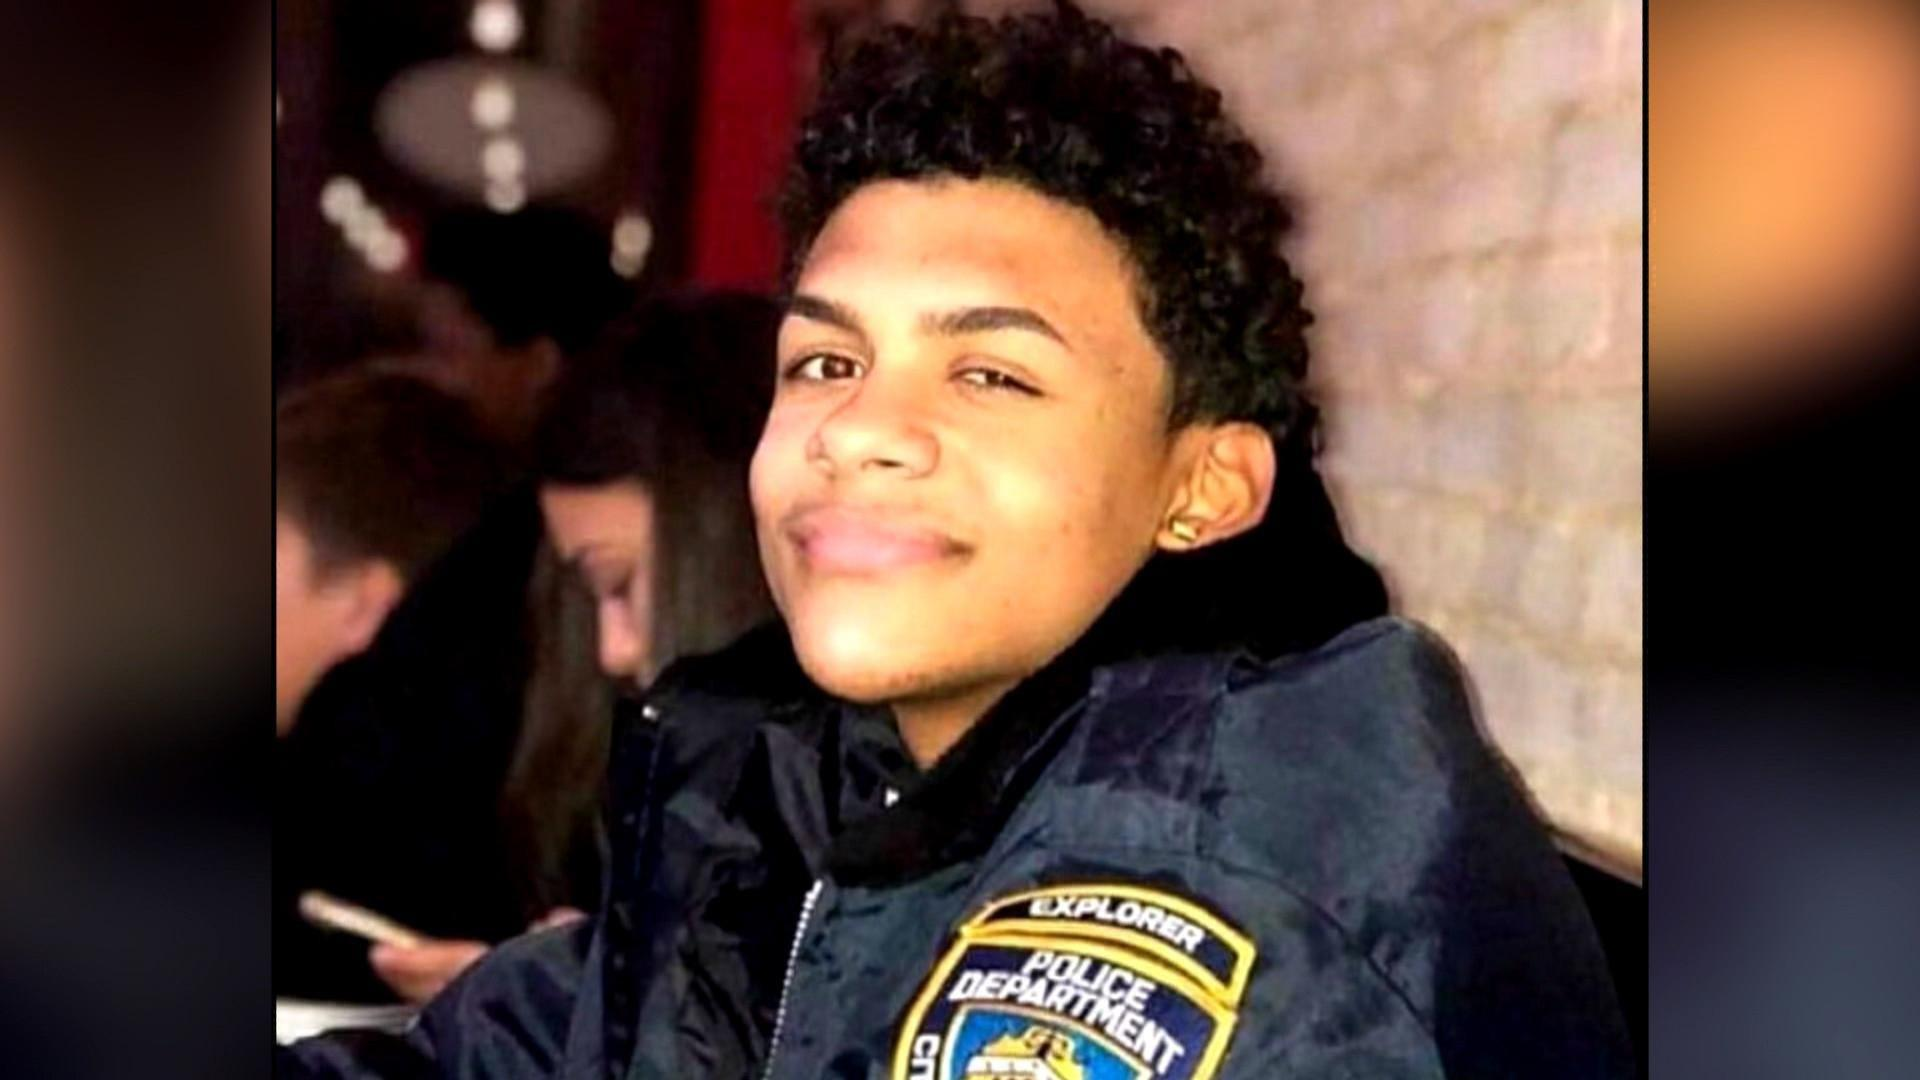 Bronx 15-year-old murdered outside a deli - NBC News